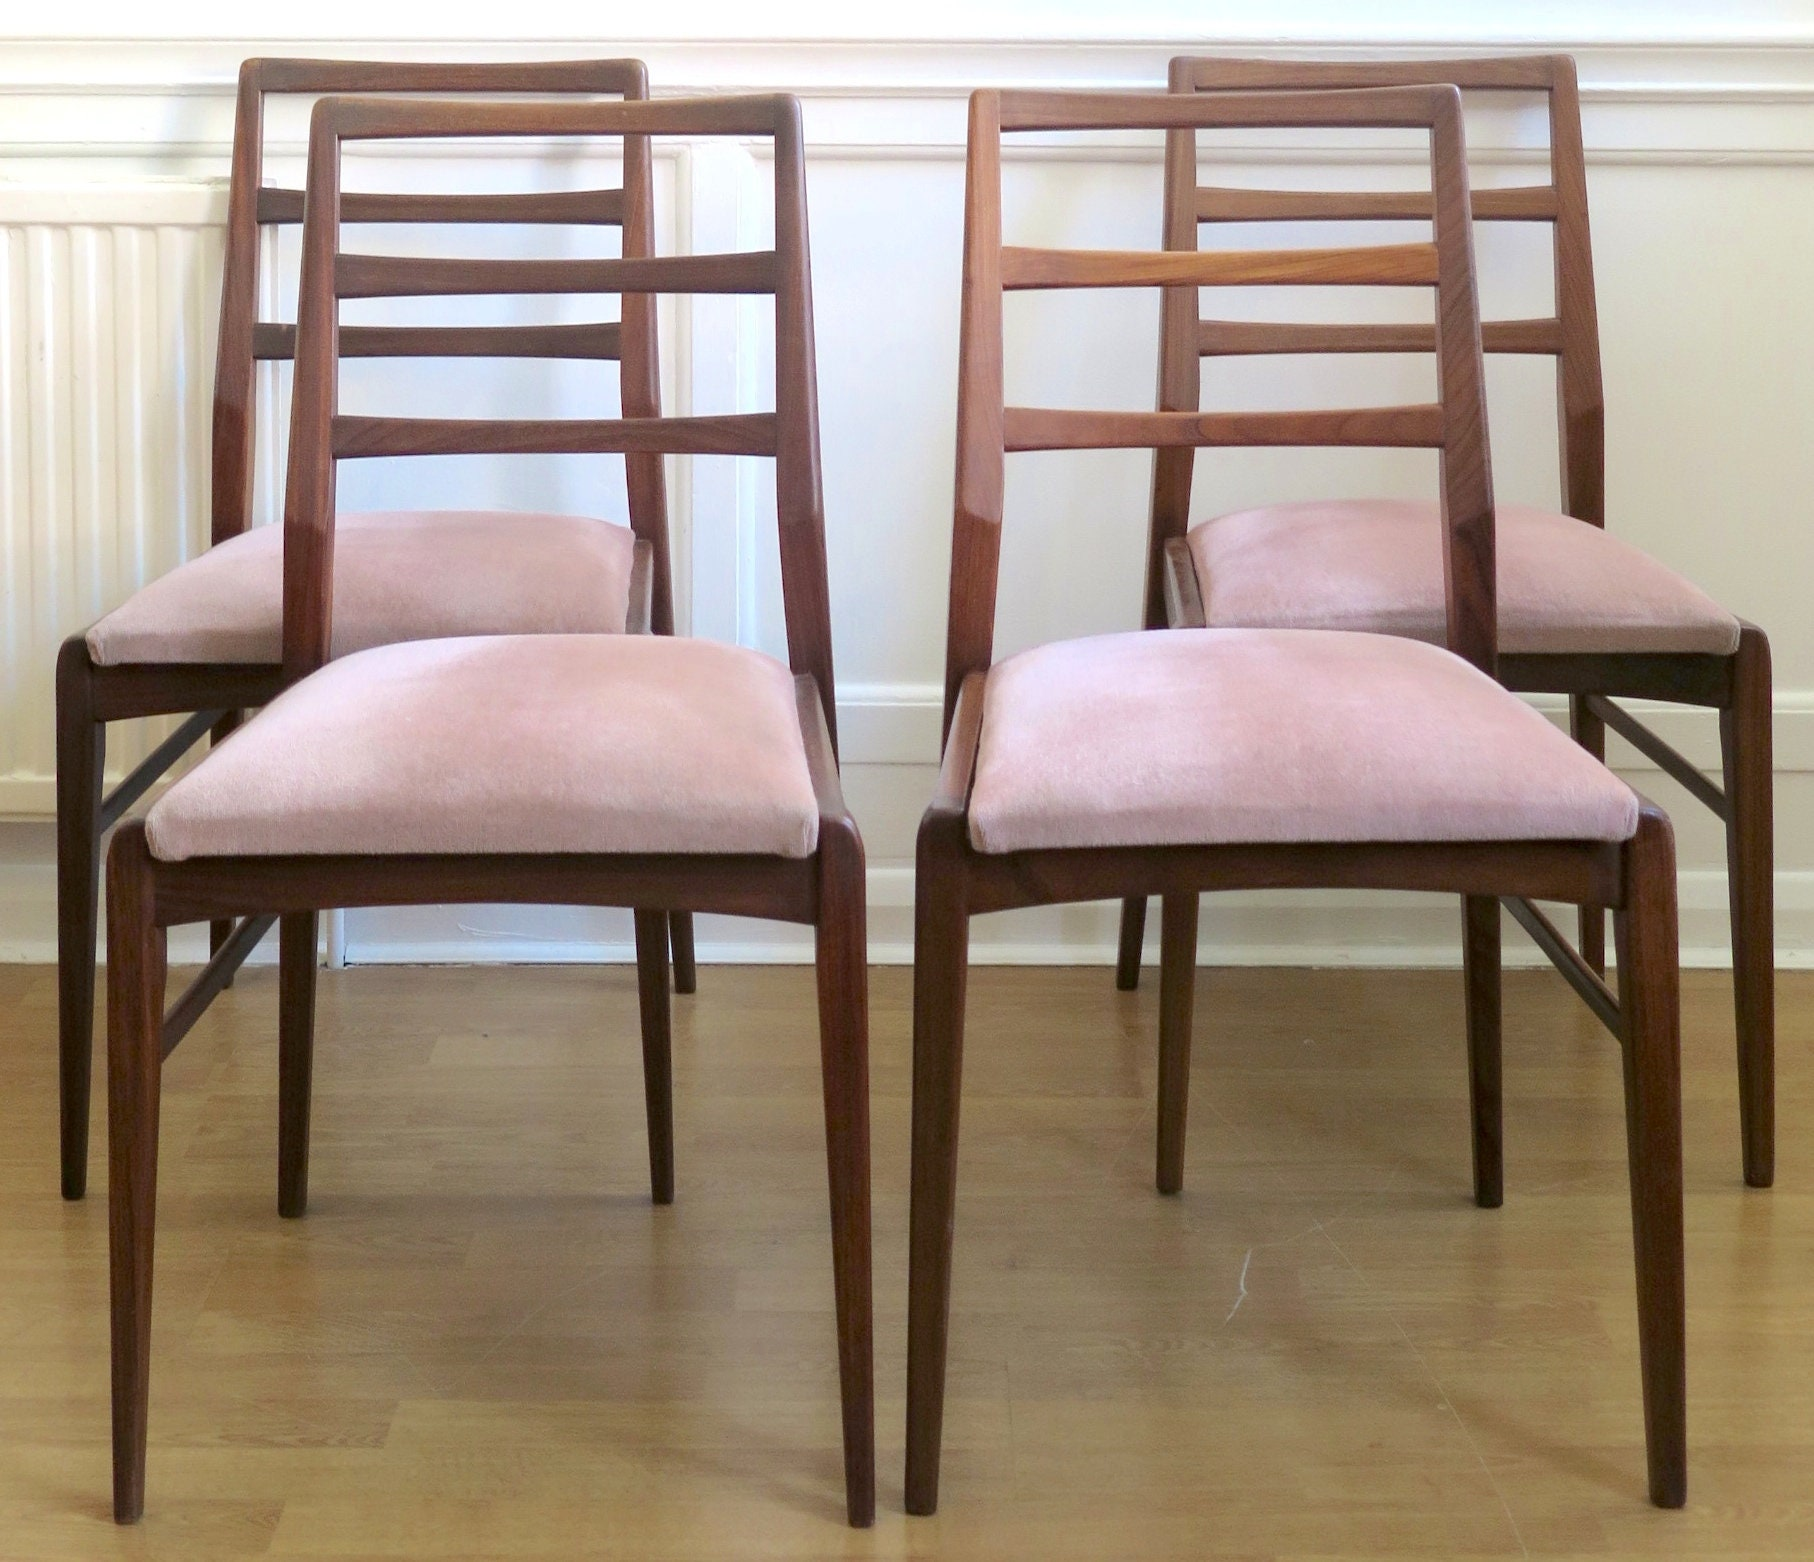 Stunning Set Of 4 Vintage Richard Hornby For Heals Fyne Ladye Afromosia Chairs. Delivery. Danish / Modern / Mid Century Style.